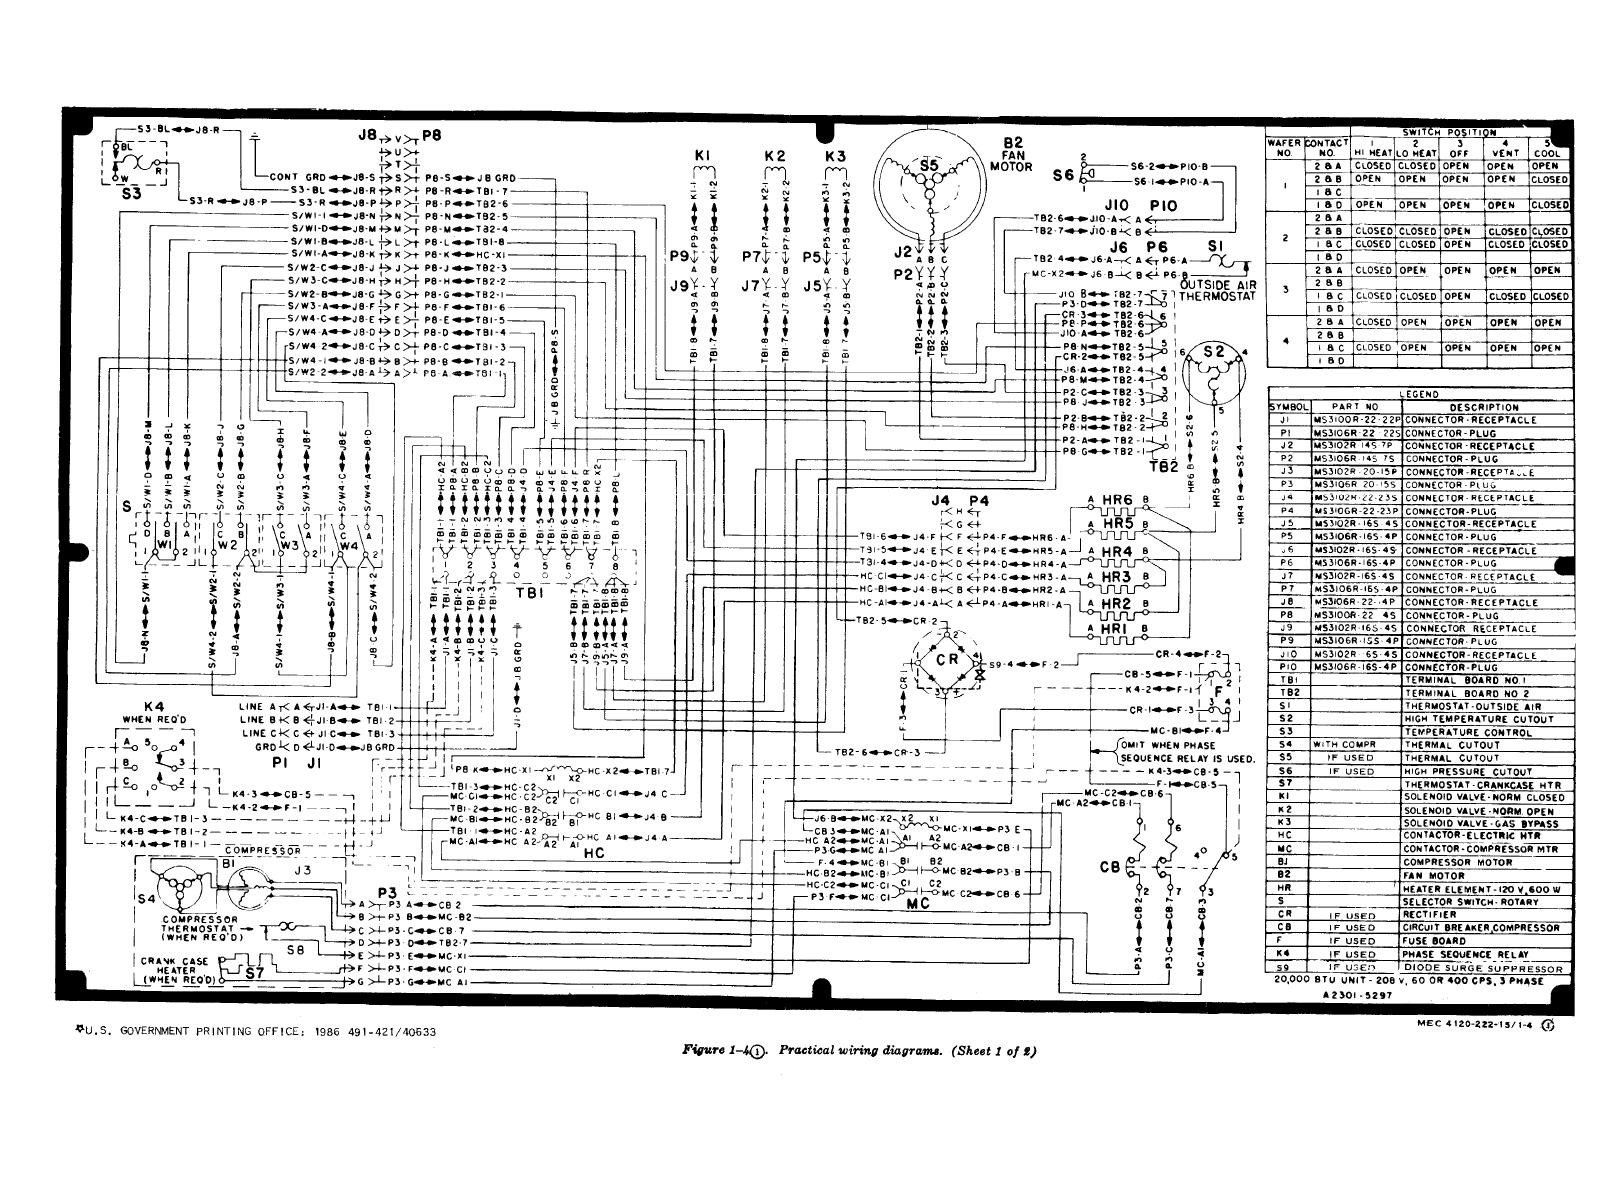 trane schematics diagrams wiring diagram today trane schematics diagrams [ 1613 x 1190 Pixel ]